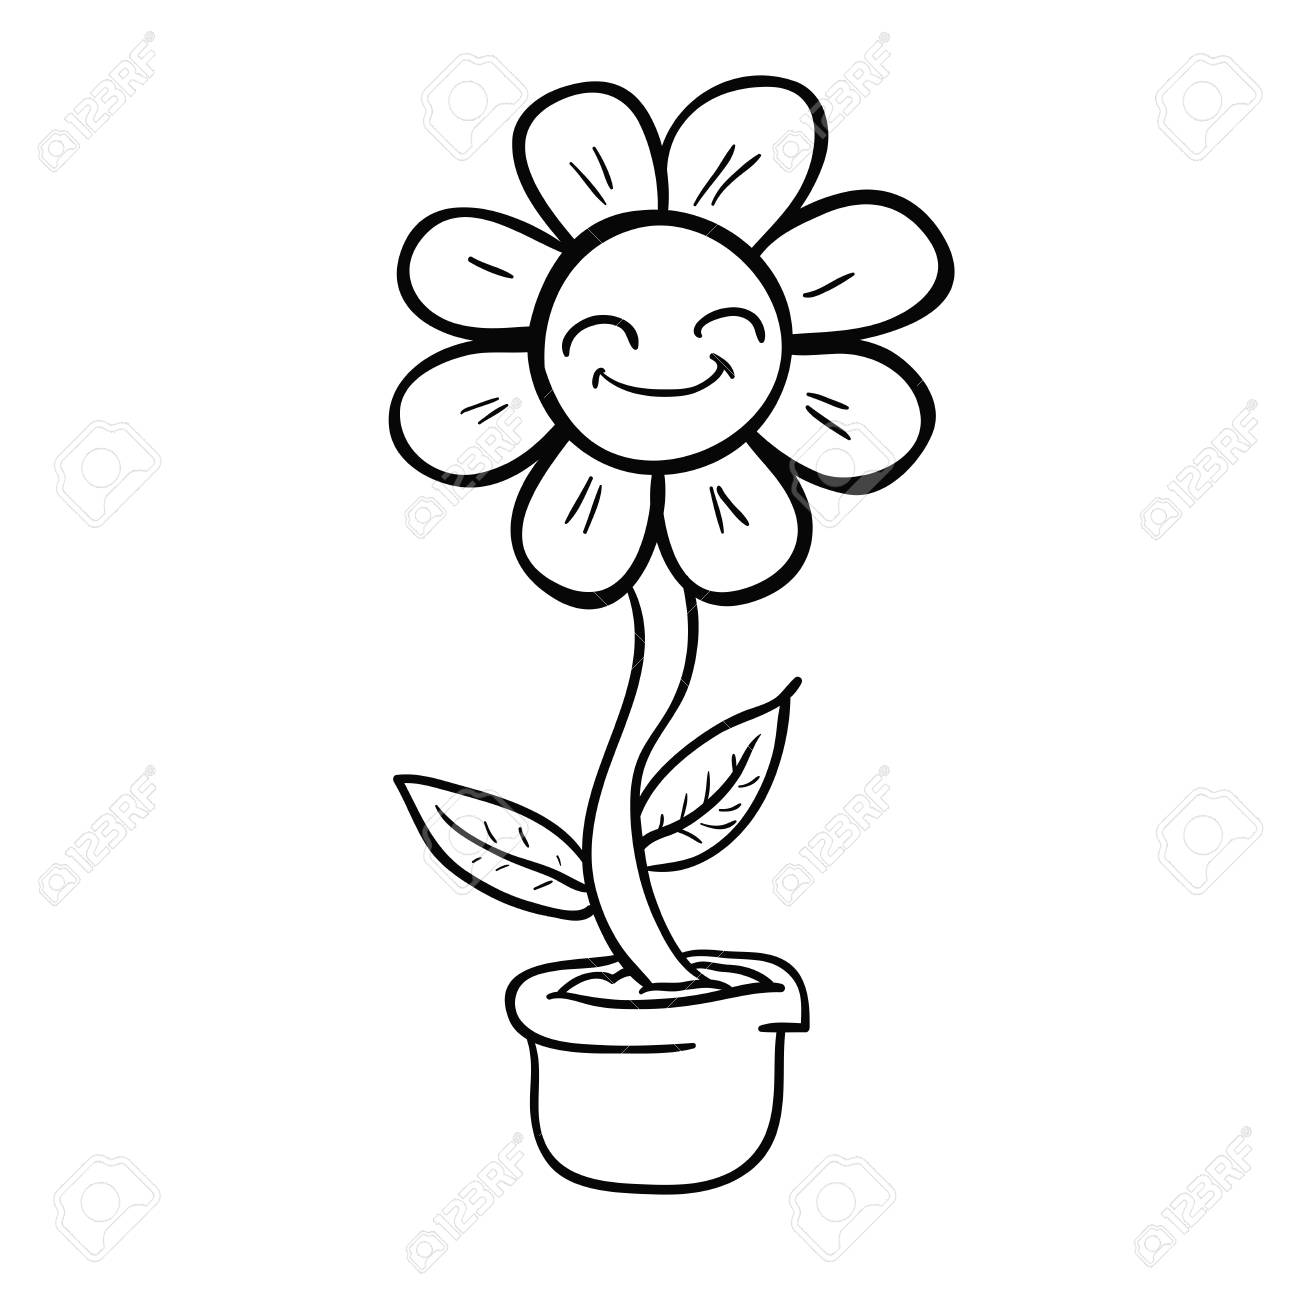 Cartoon Happy Flower In A Pot Black And White Illustration Royalty